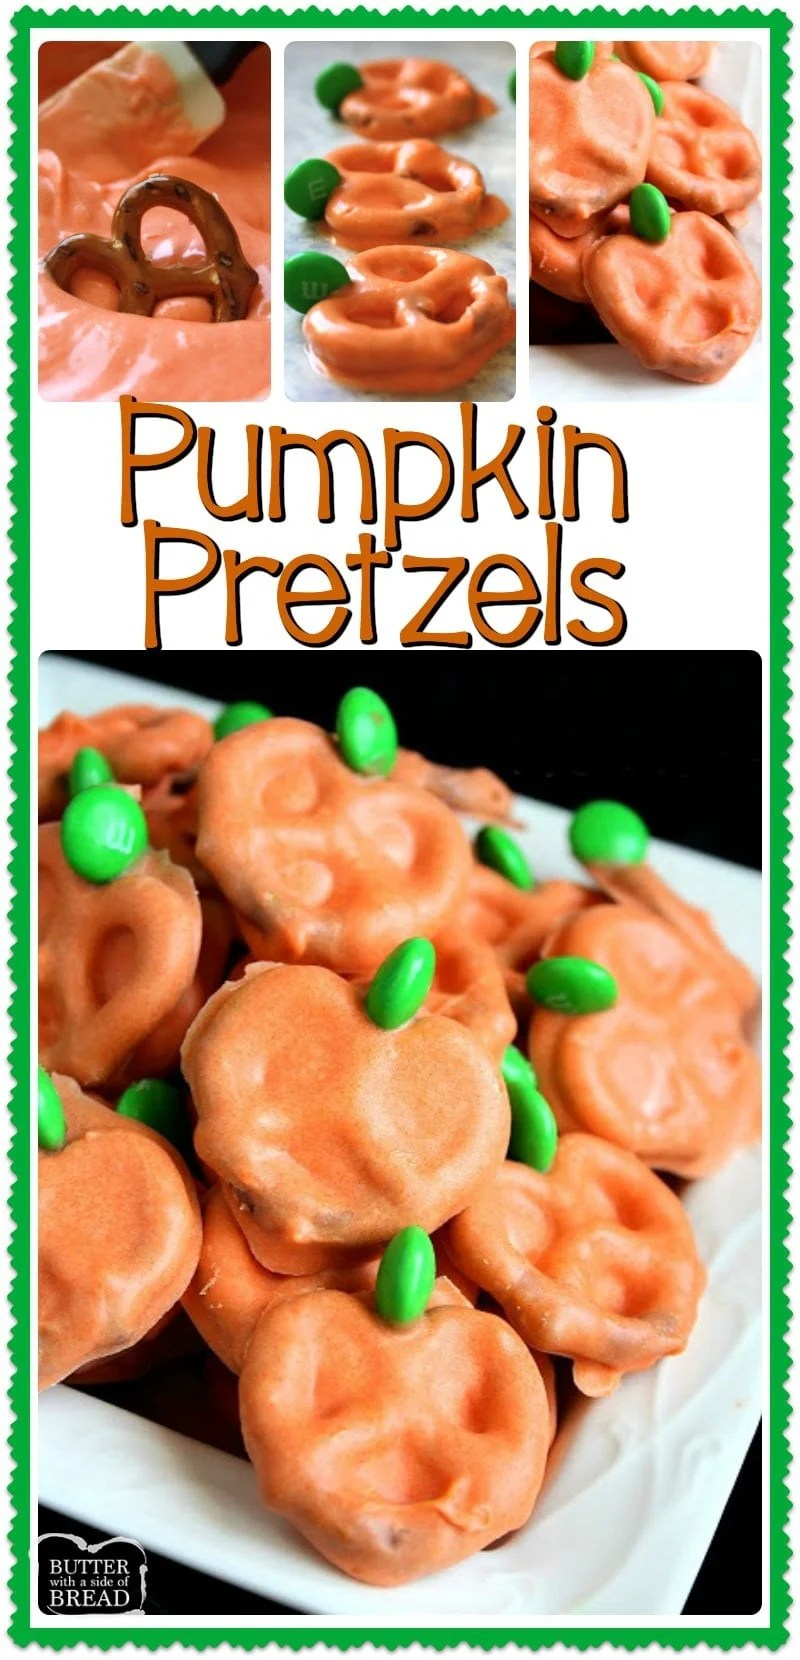 Pumpkin Pretzels are chocolate covered pretzels made with just a few ingredients & perfect for Halloween! Tips for melting chocolate & the BEST tool to use.